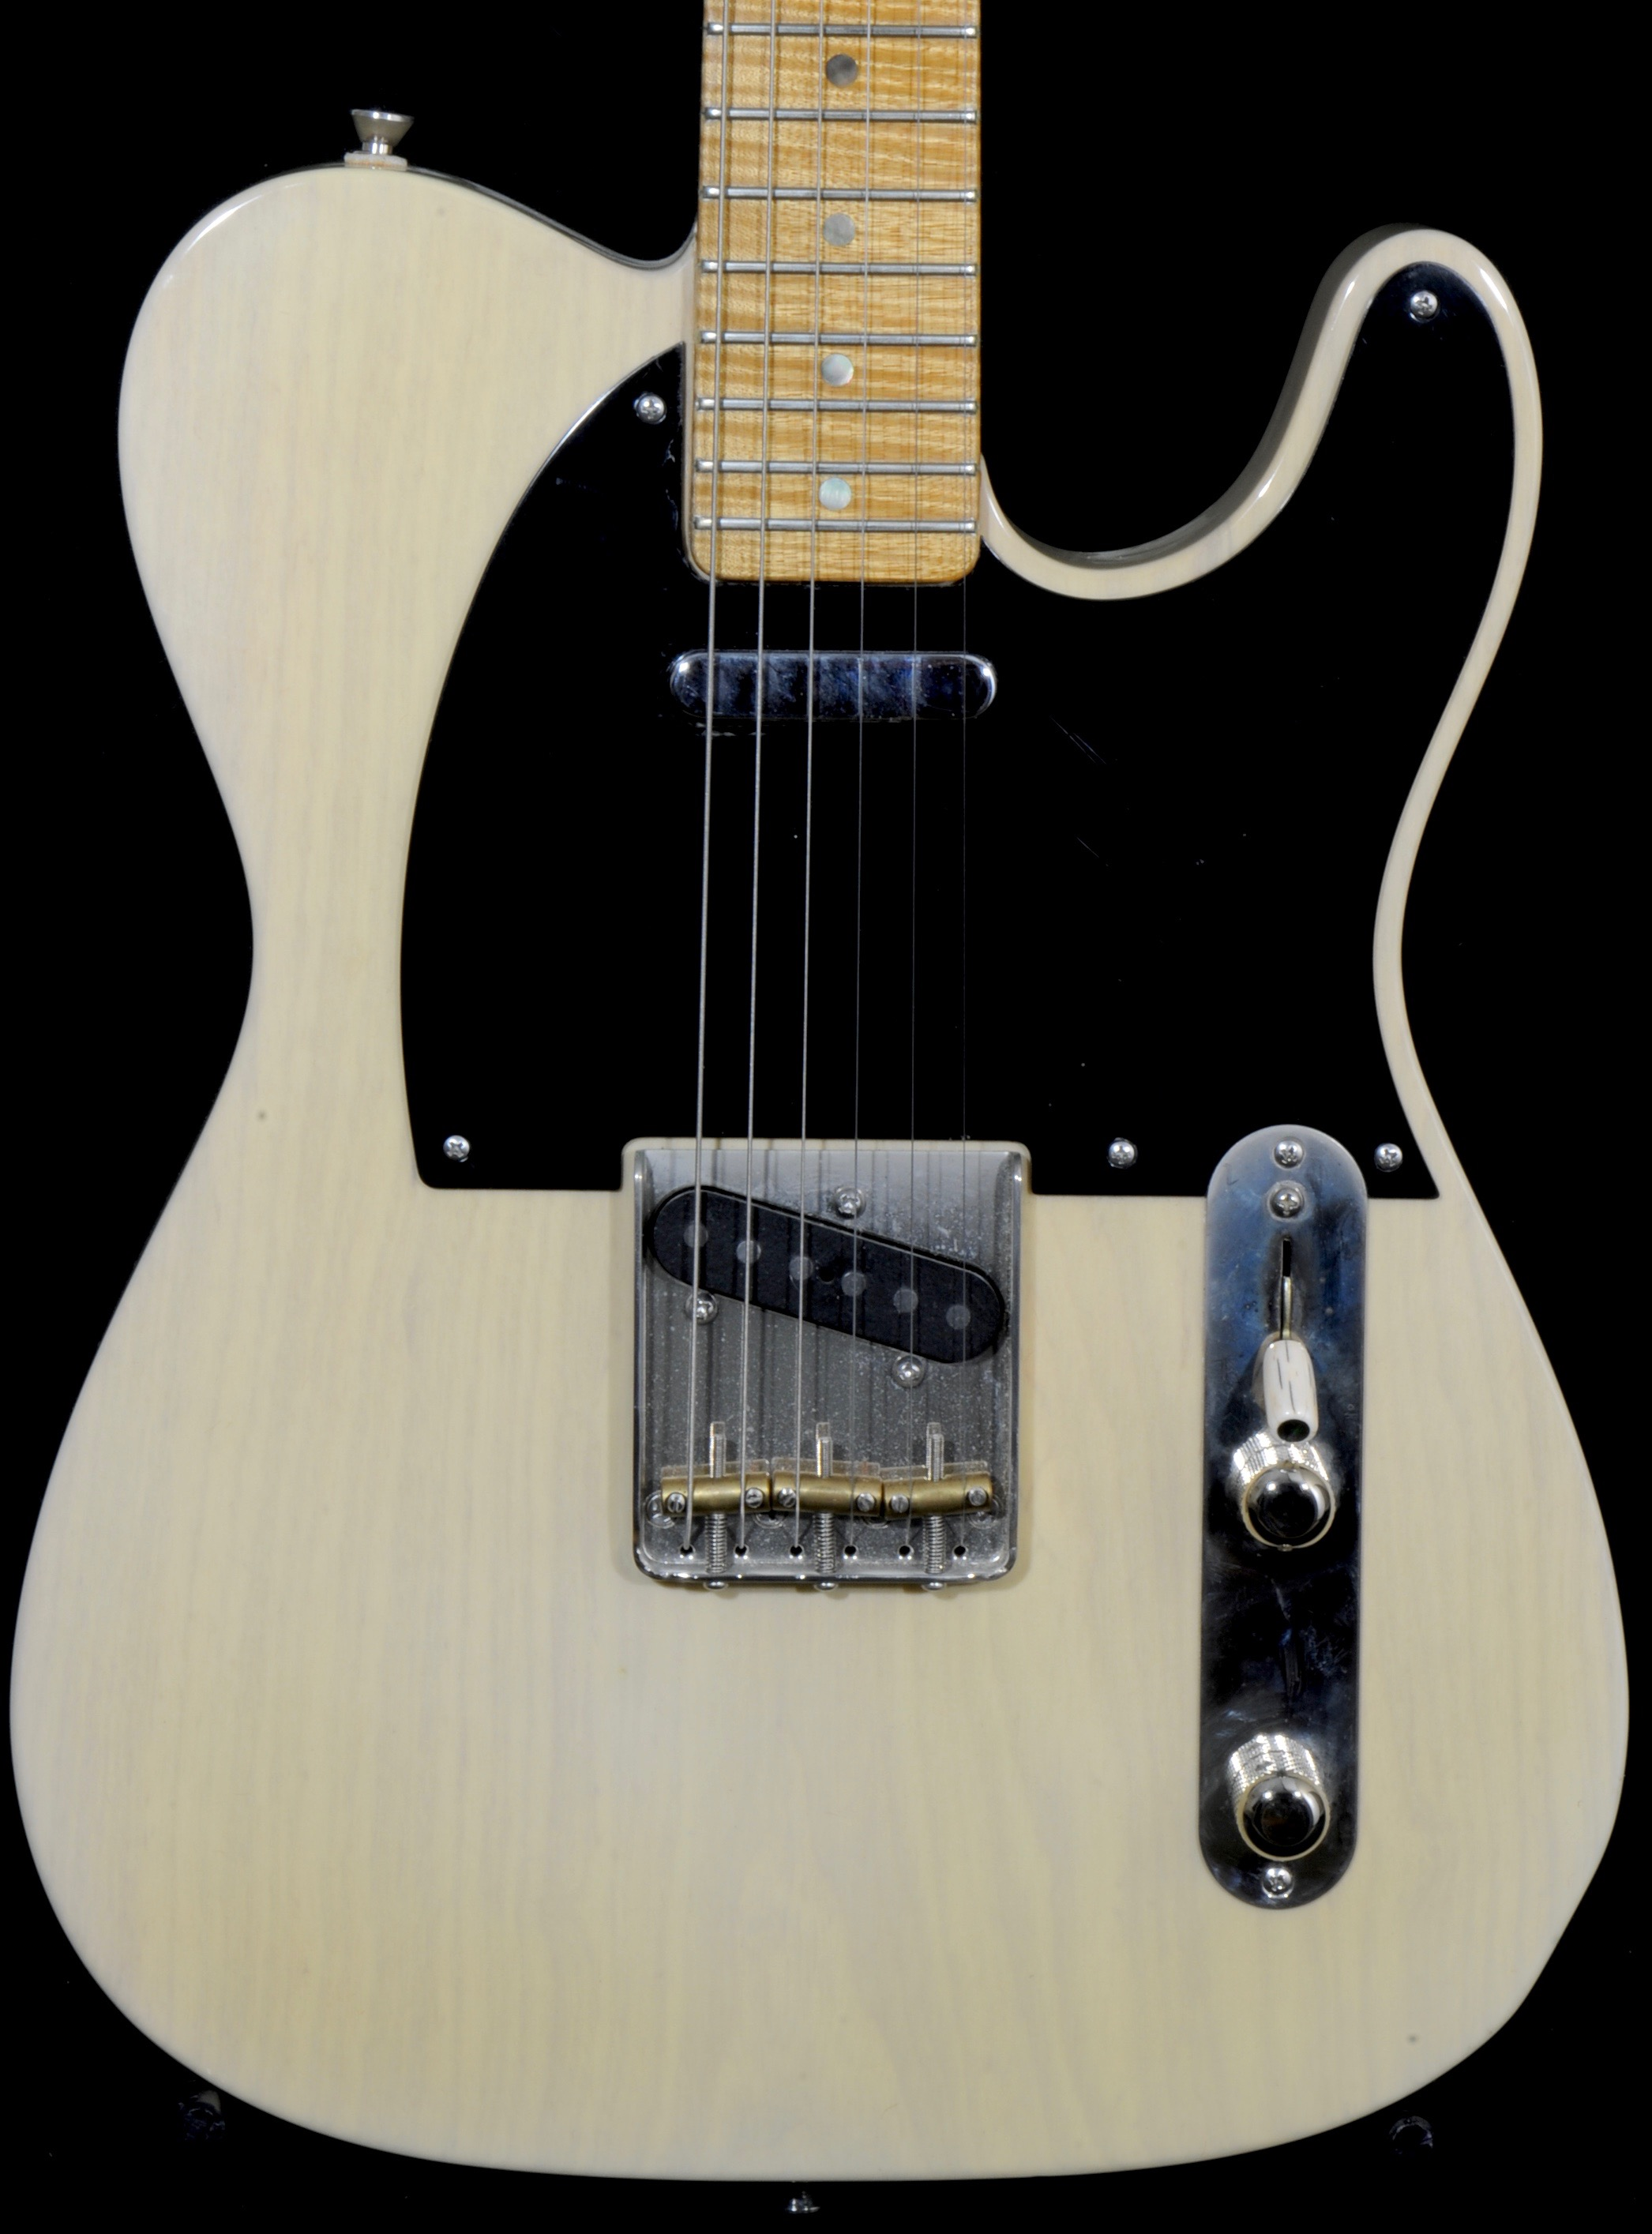 detemple trans white tele 2007 1 piece ash prime guitars. Black Bedroom Furniture Sets. Home Design Ideas